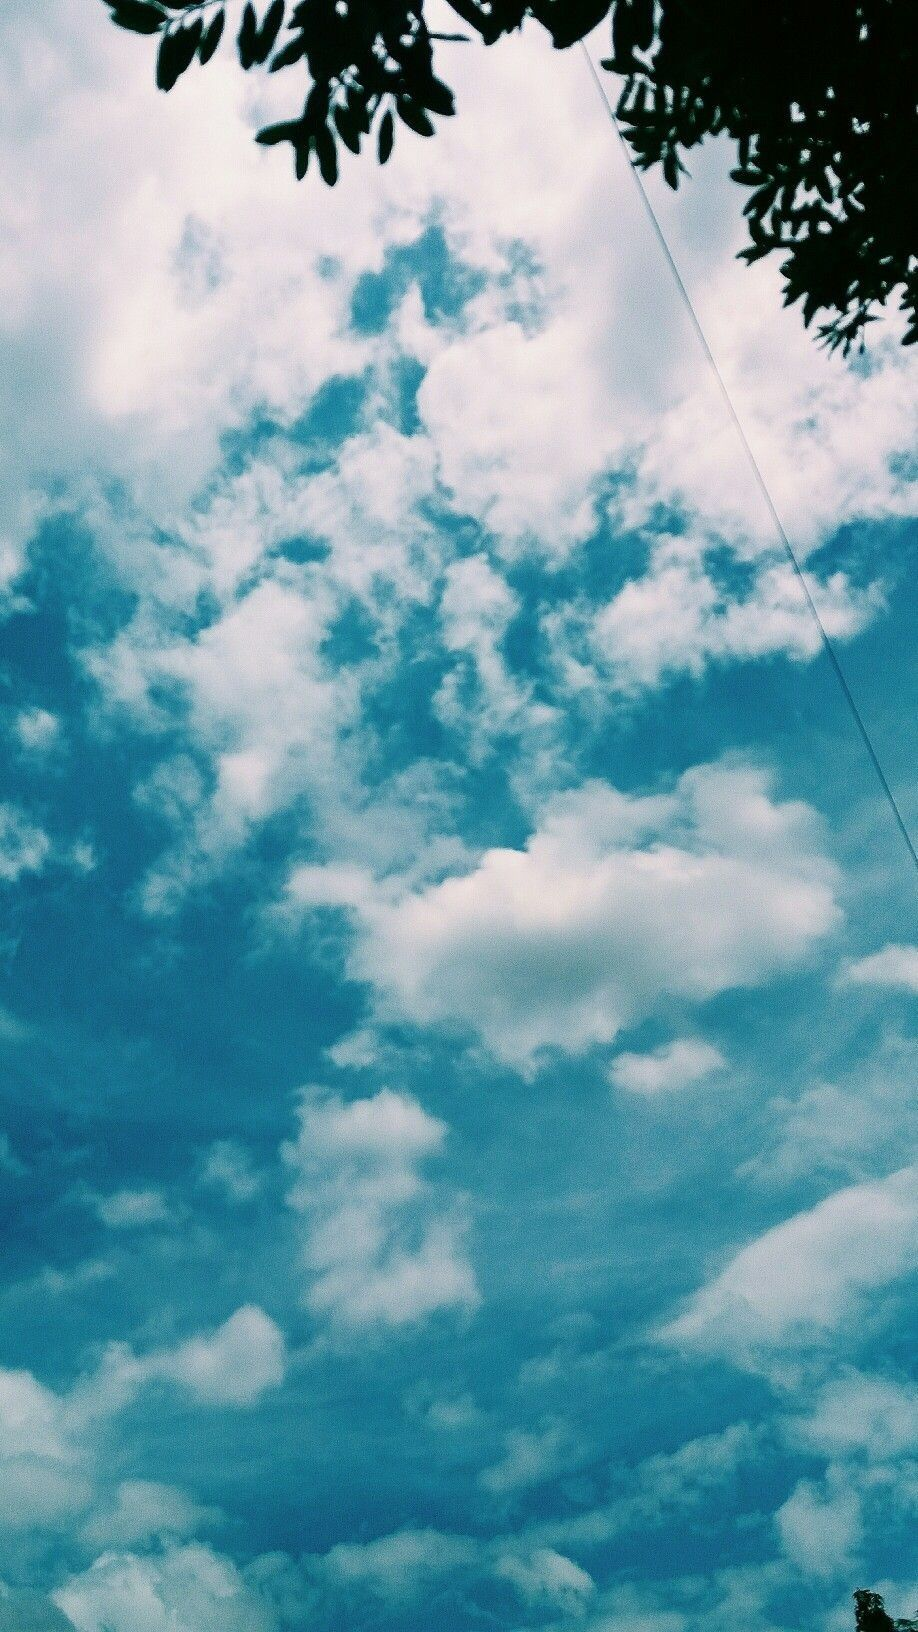 Unduh 107 Wallpaper Tumblr Langit HD Terbaik